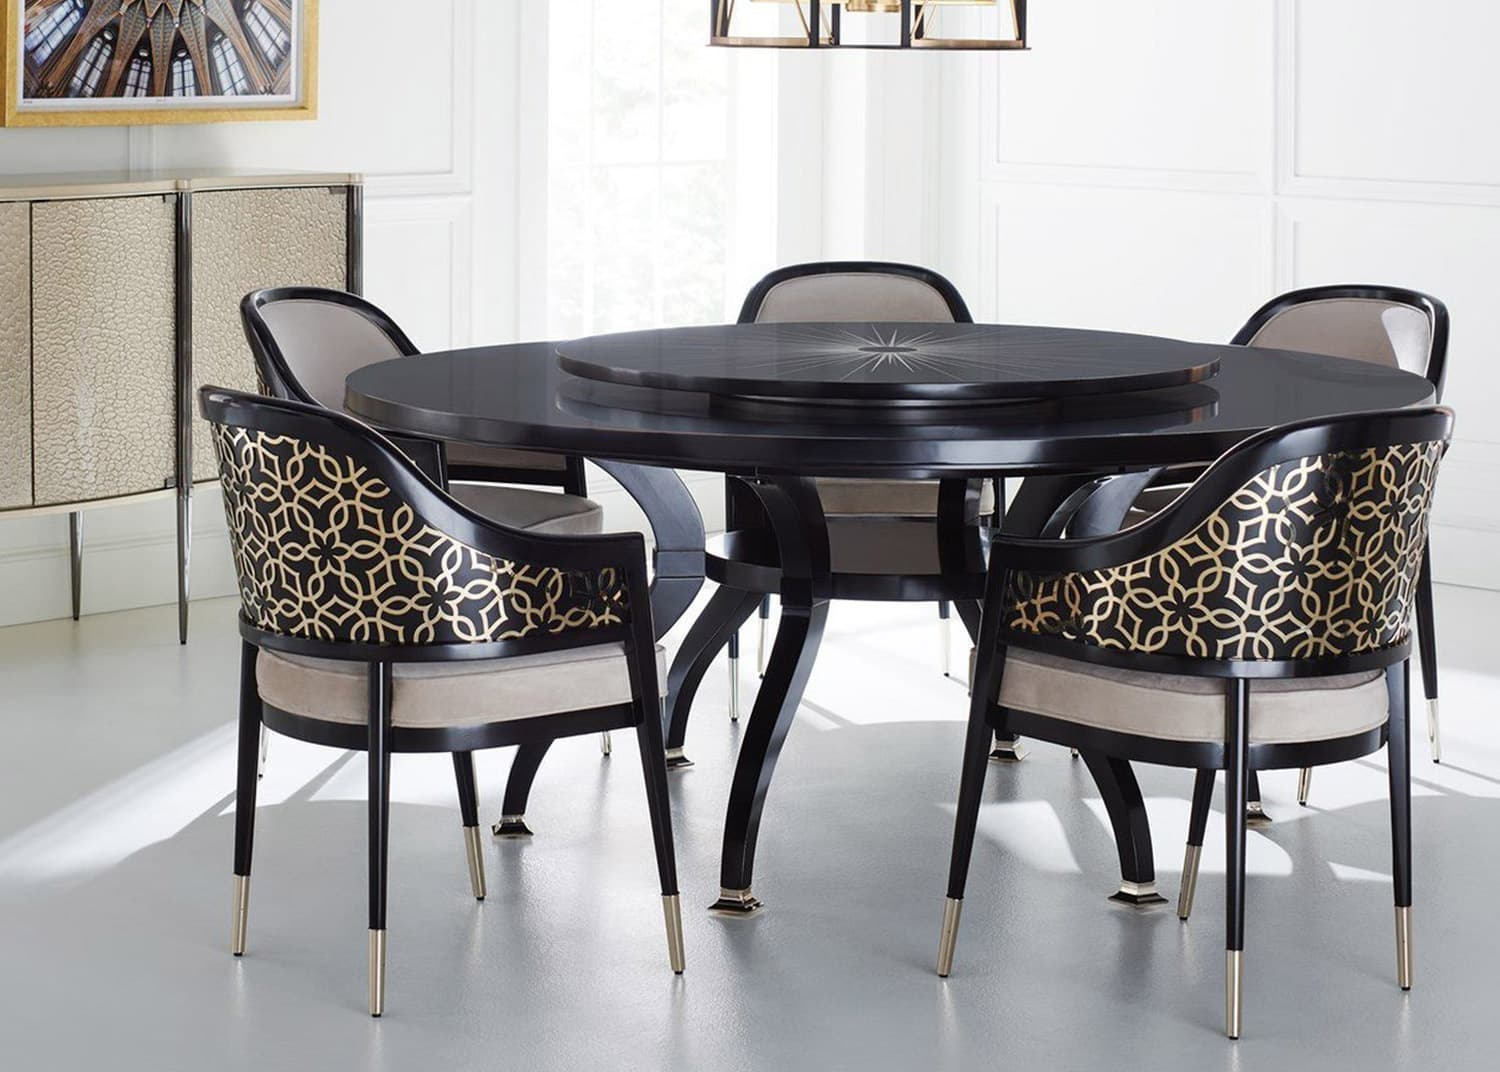 Allegro Dining Arm Chair Montreal S, Allegro Dining Room Furniture